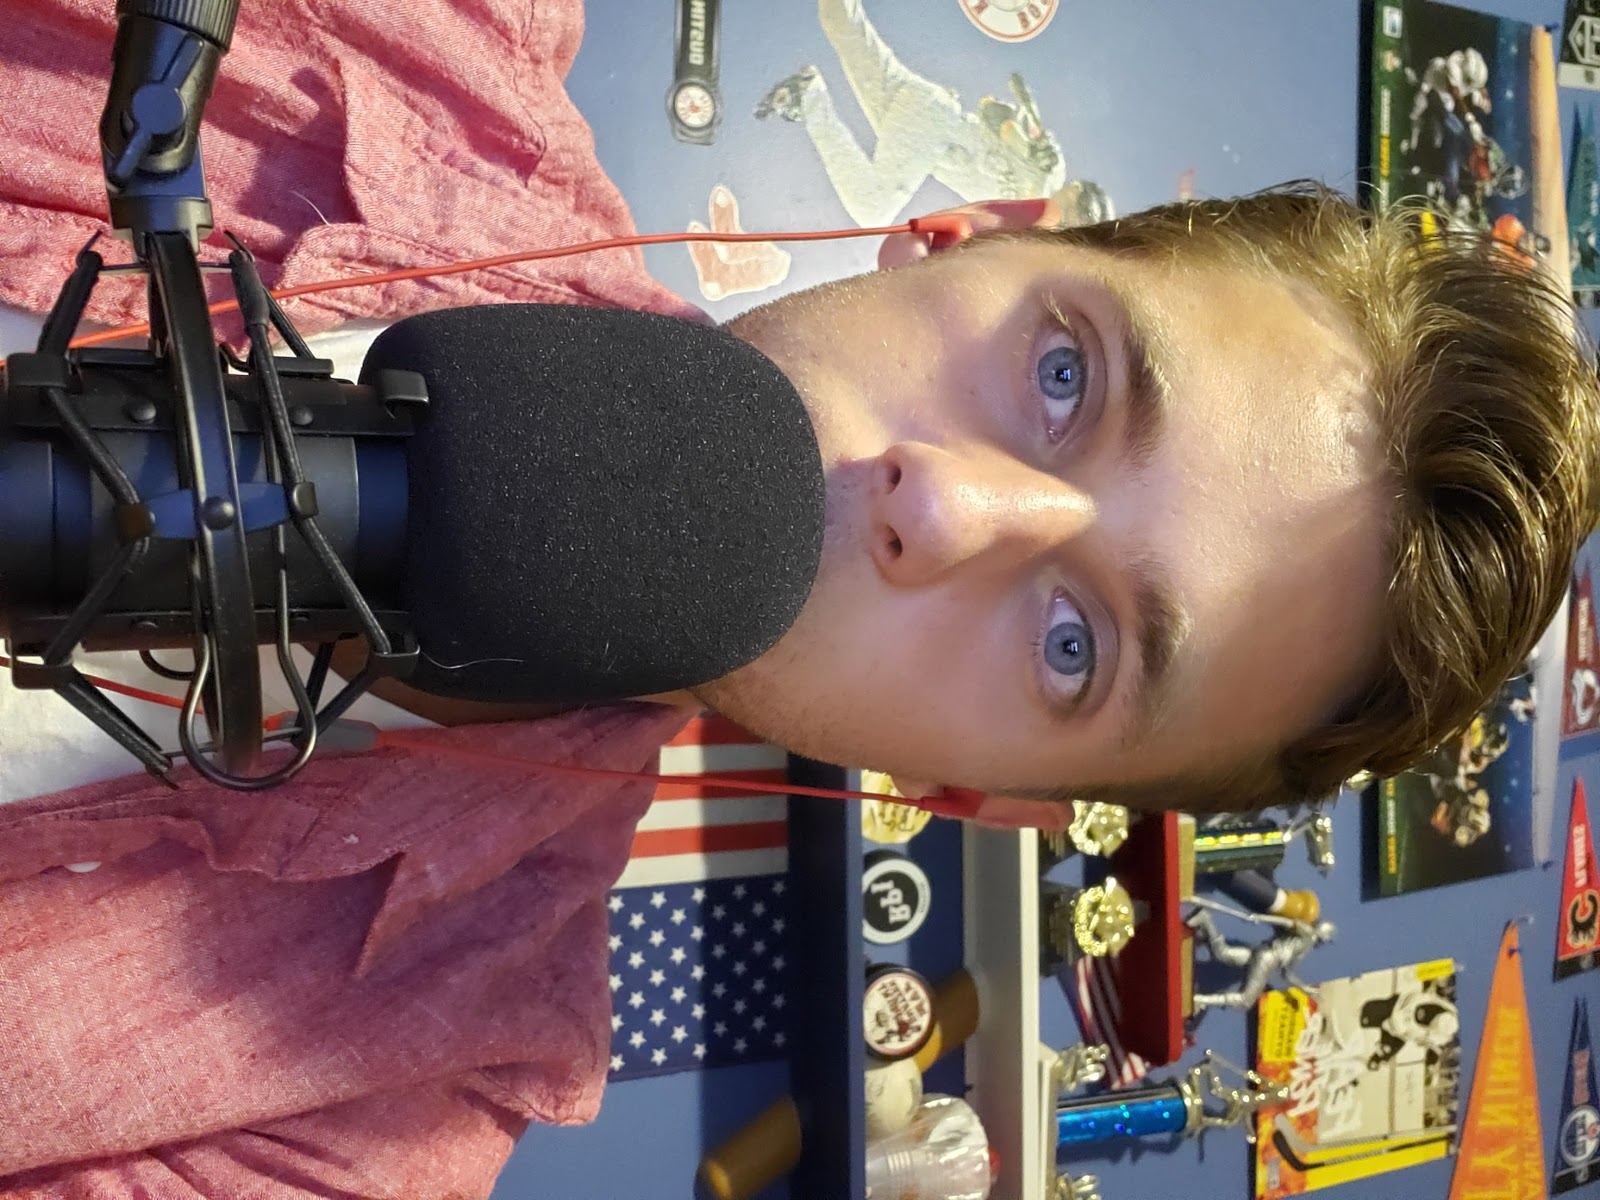 Me with my podcasting mic